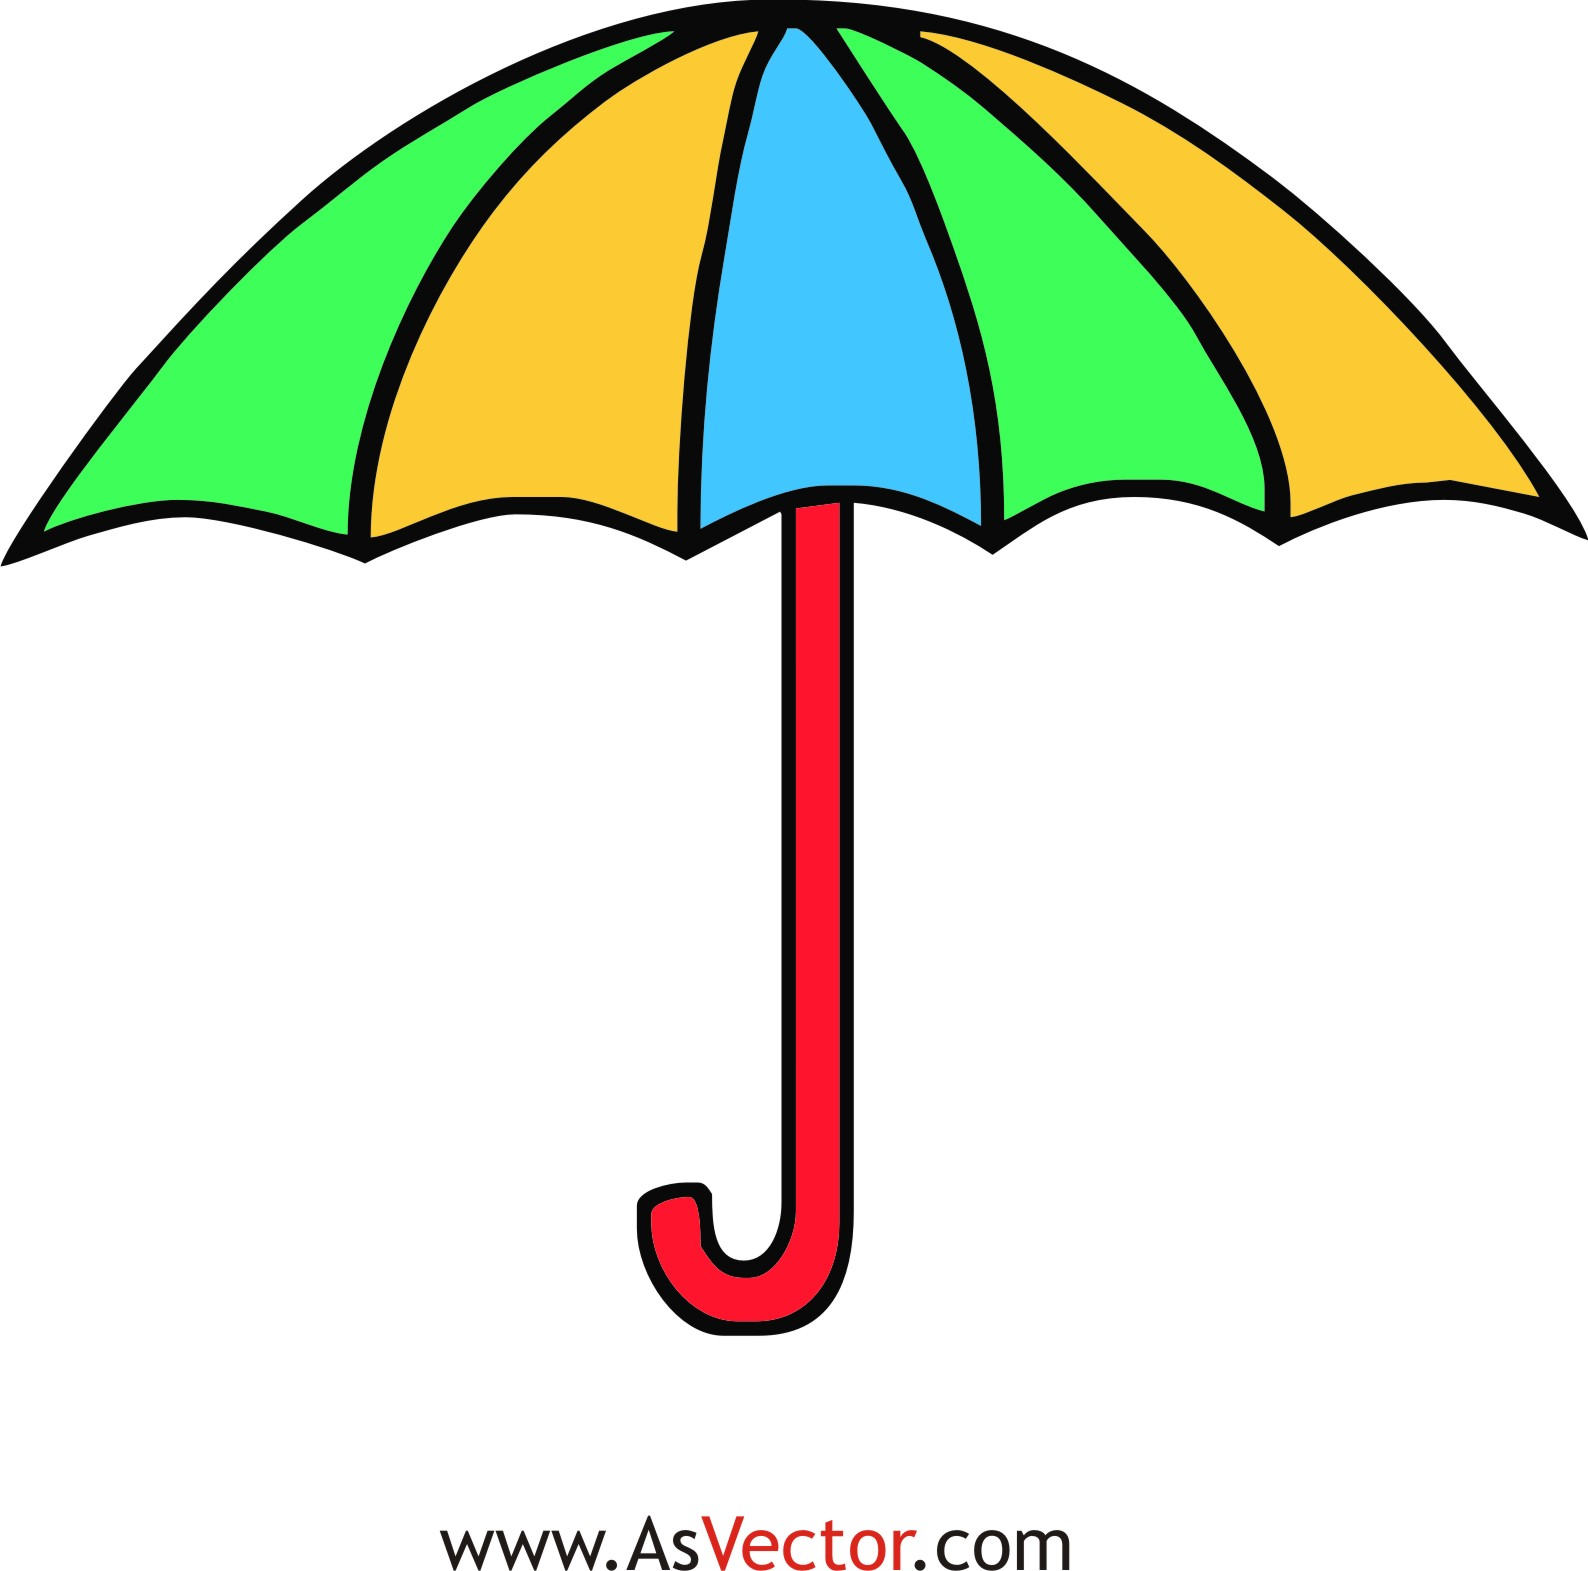 Umbrella clipart clipart .